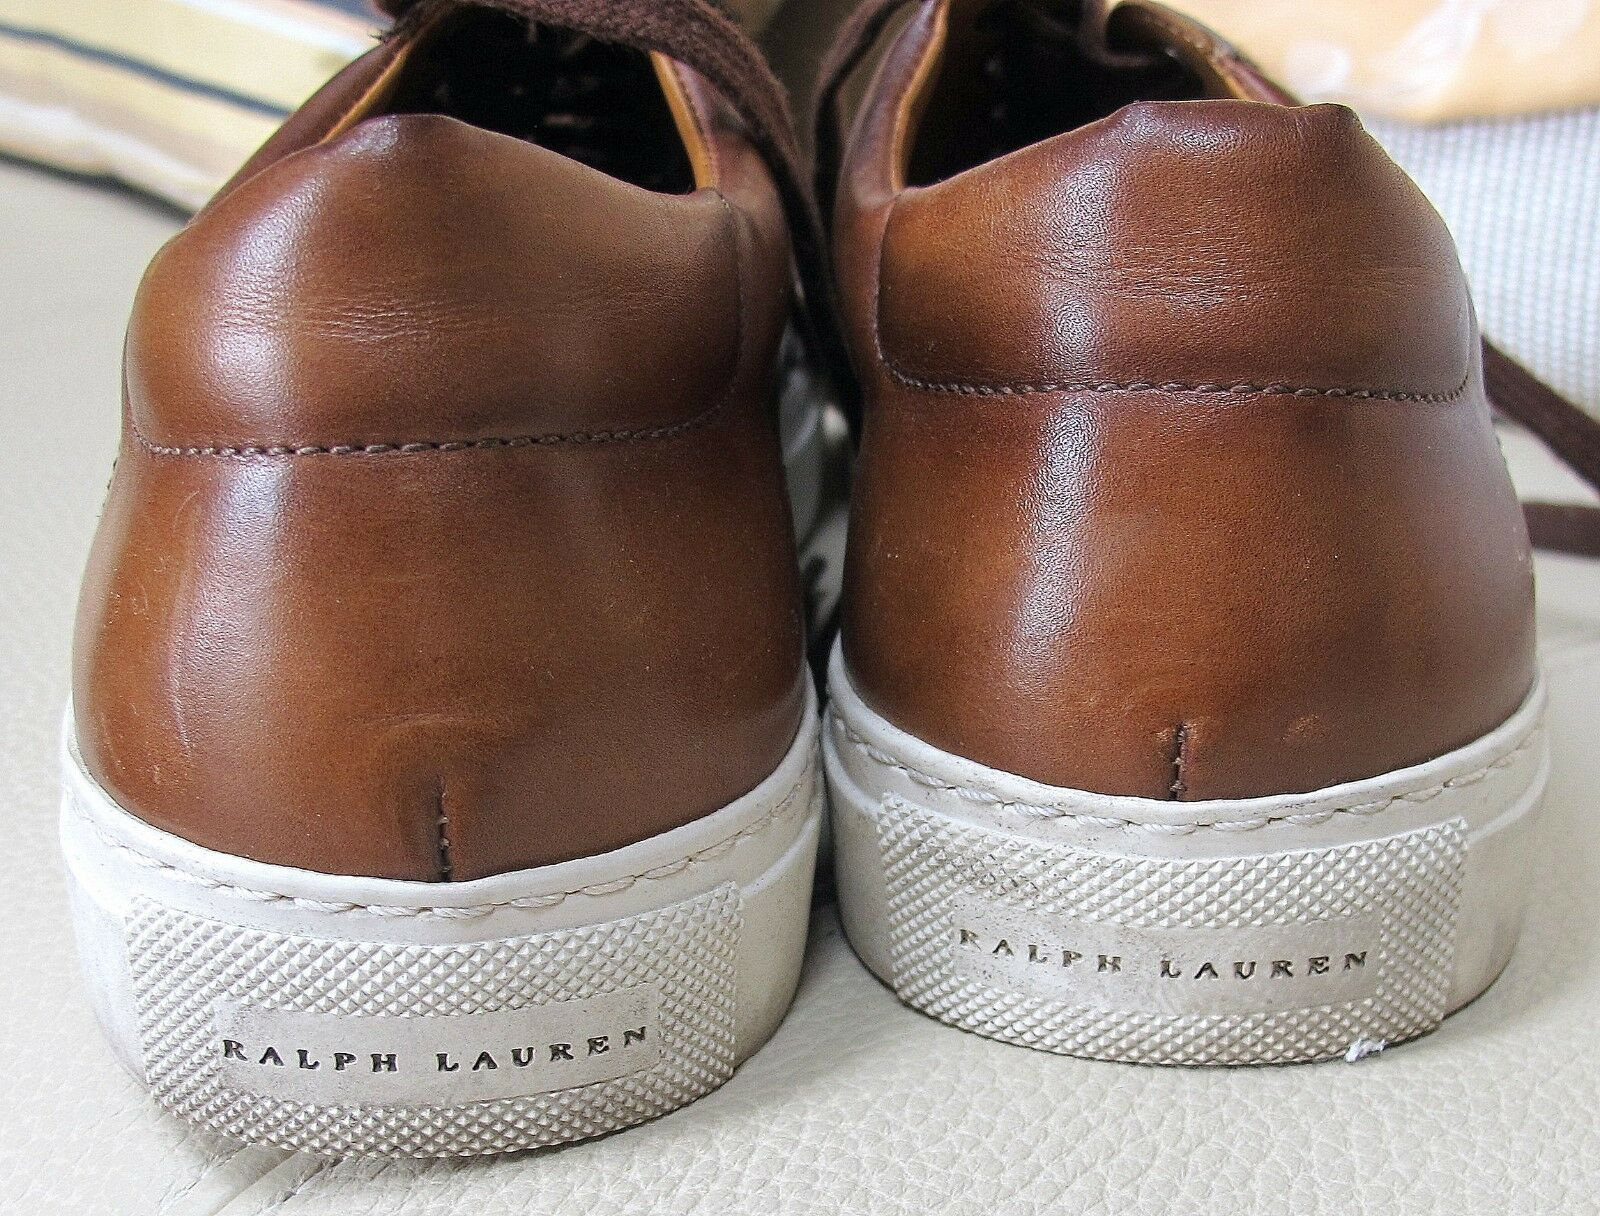 Ralph Lauren Collection Burnished Burnished Burnished Brown Italian Sneakers - Size 38B 2f381f